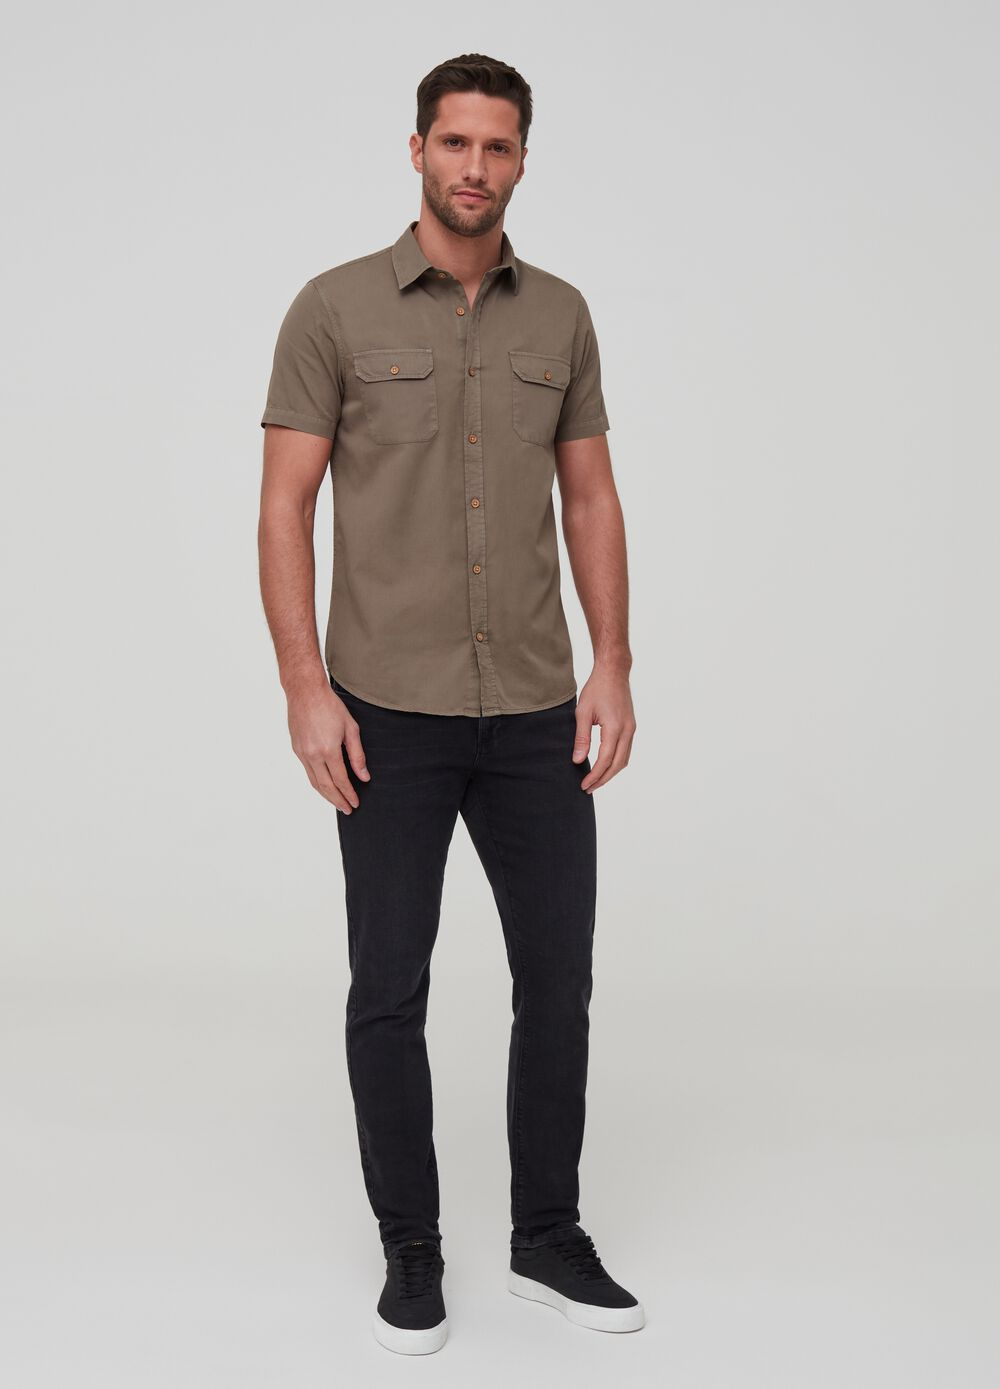 Short-sleeved shirt with pockets